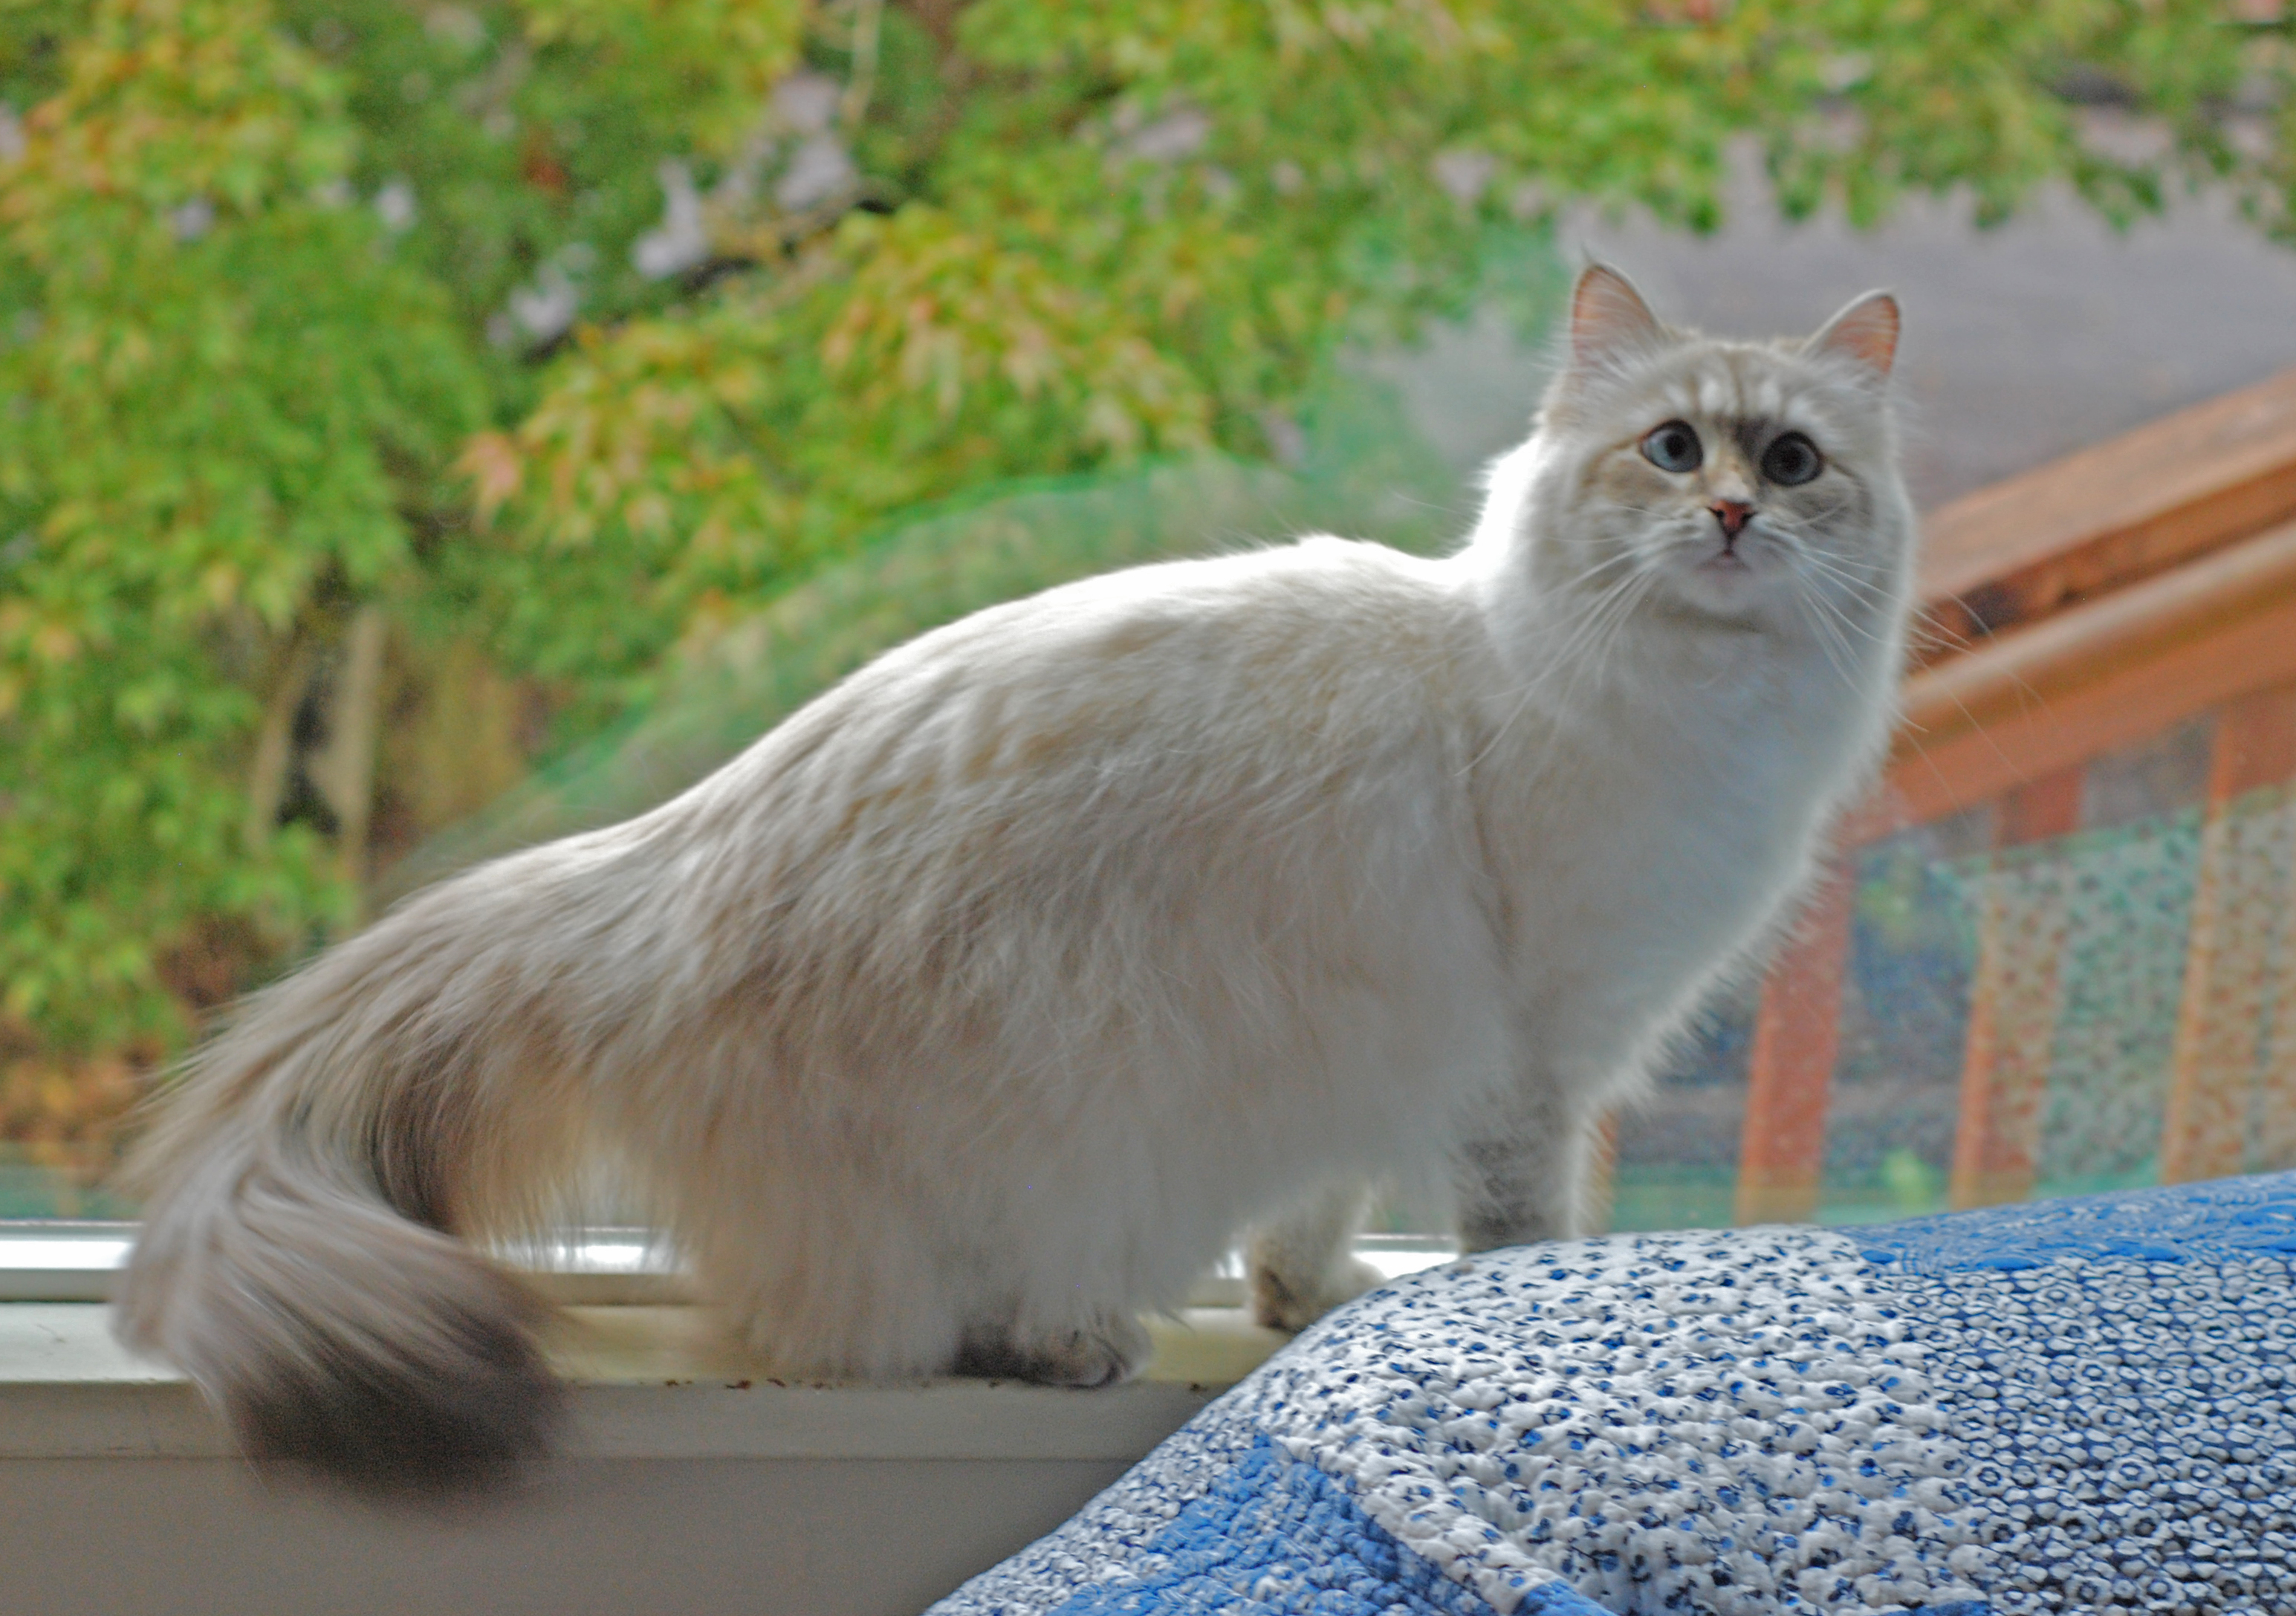 Is Dalida the Siberian you've been looking for?